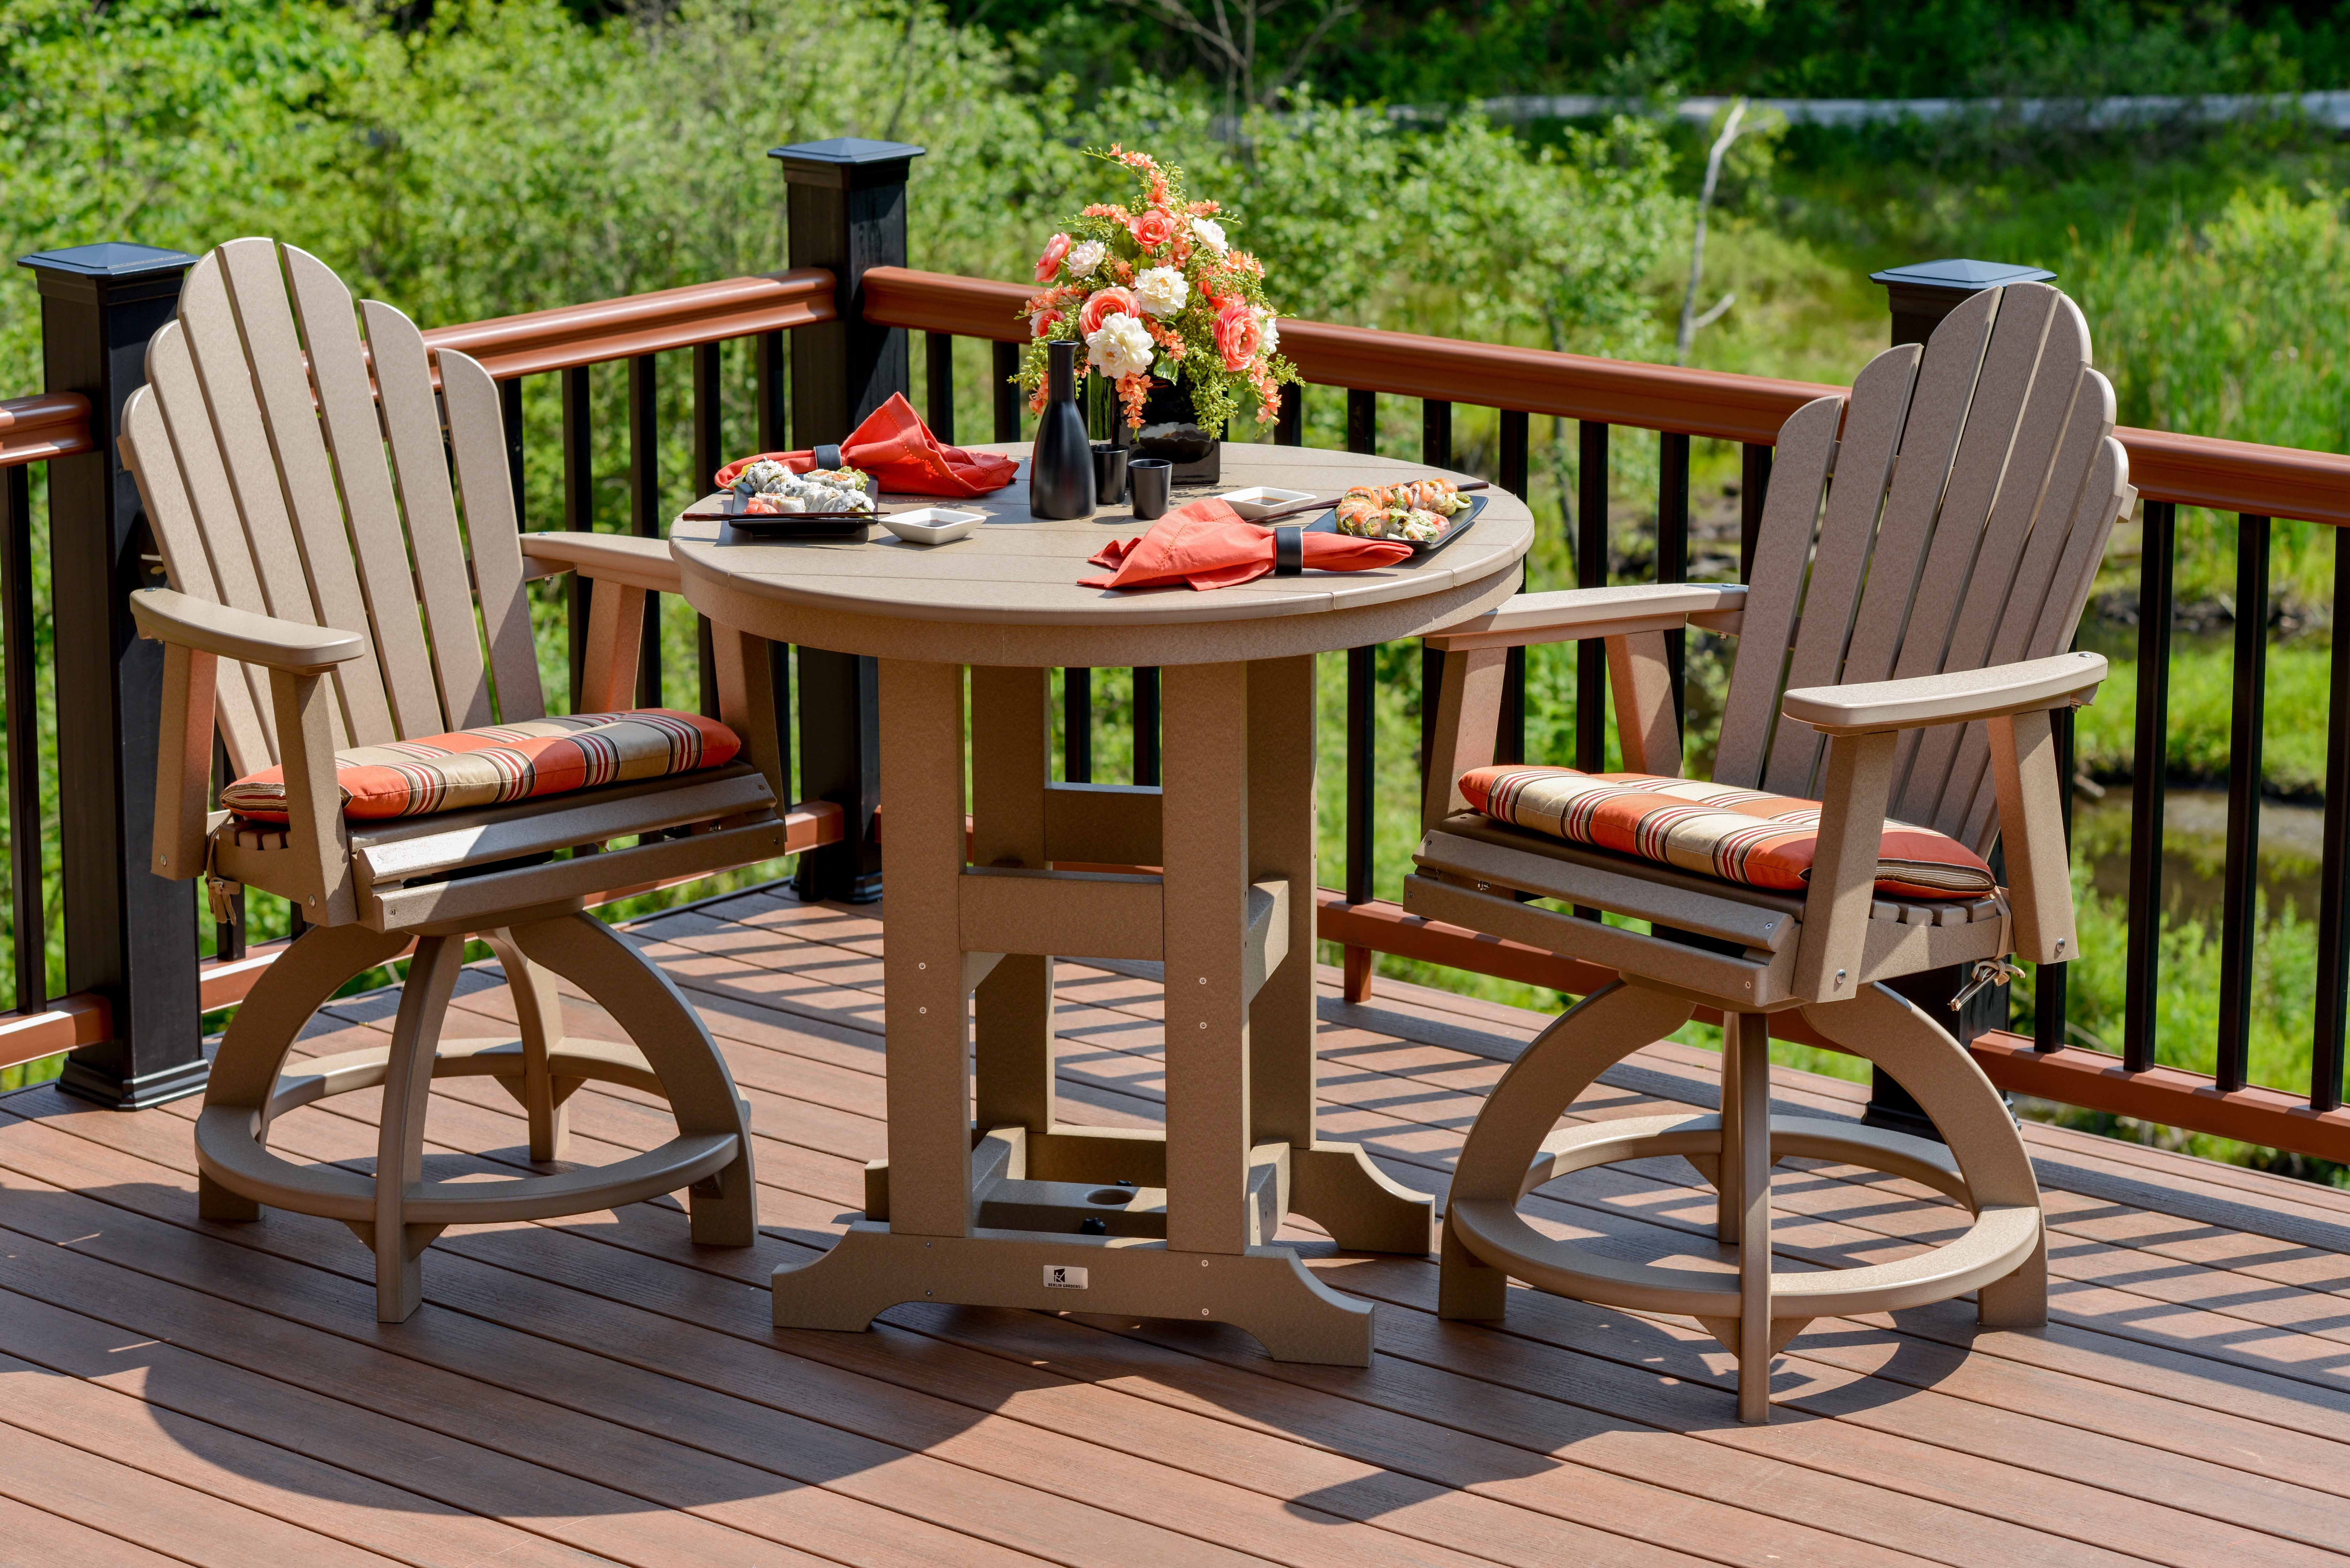 Cozy Comfortable And Inviting Our 38 Round Outdoor Dining Table